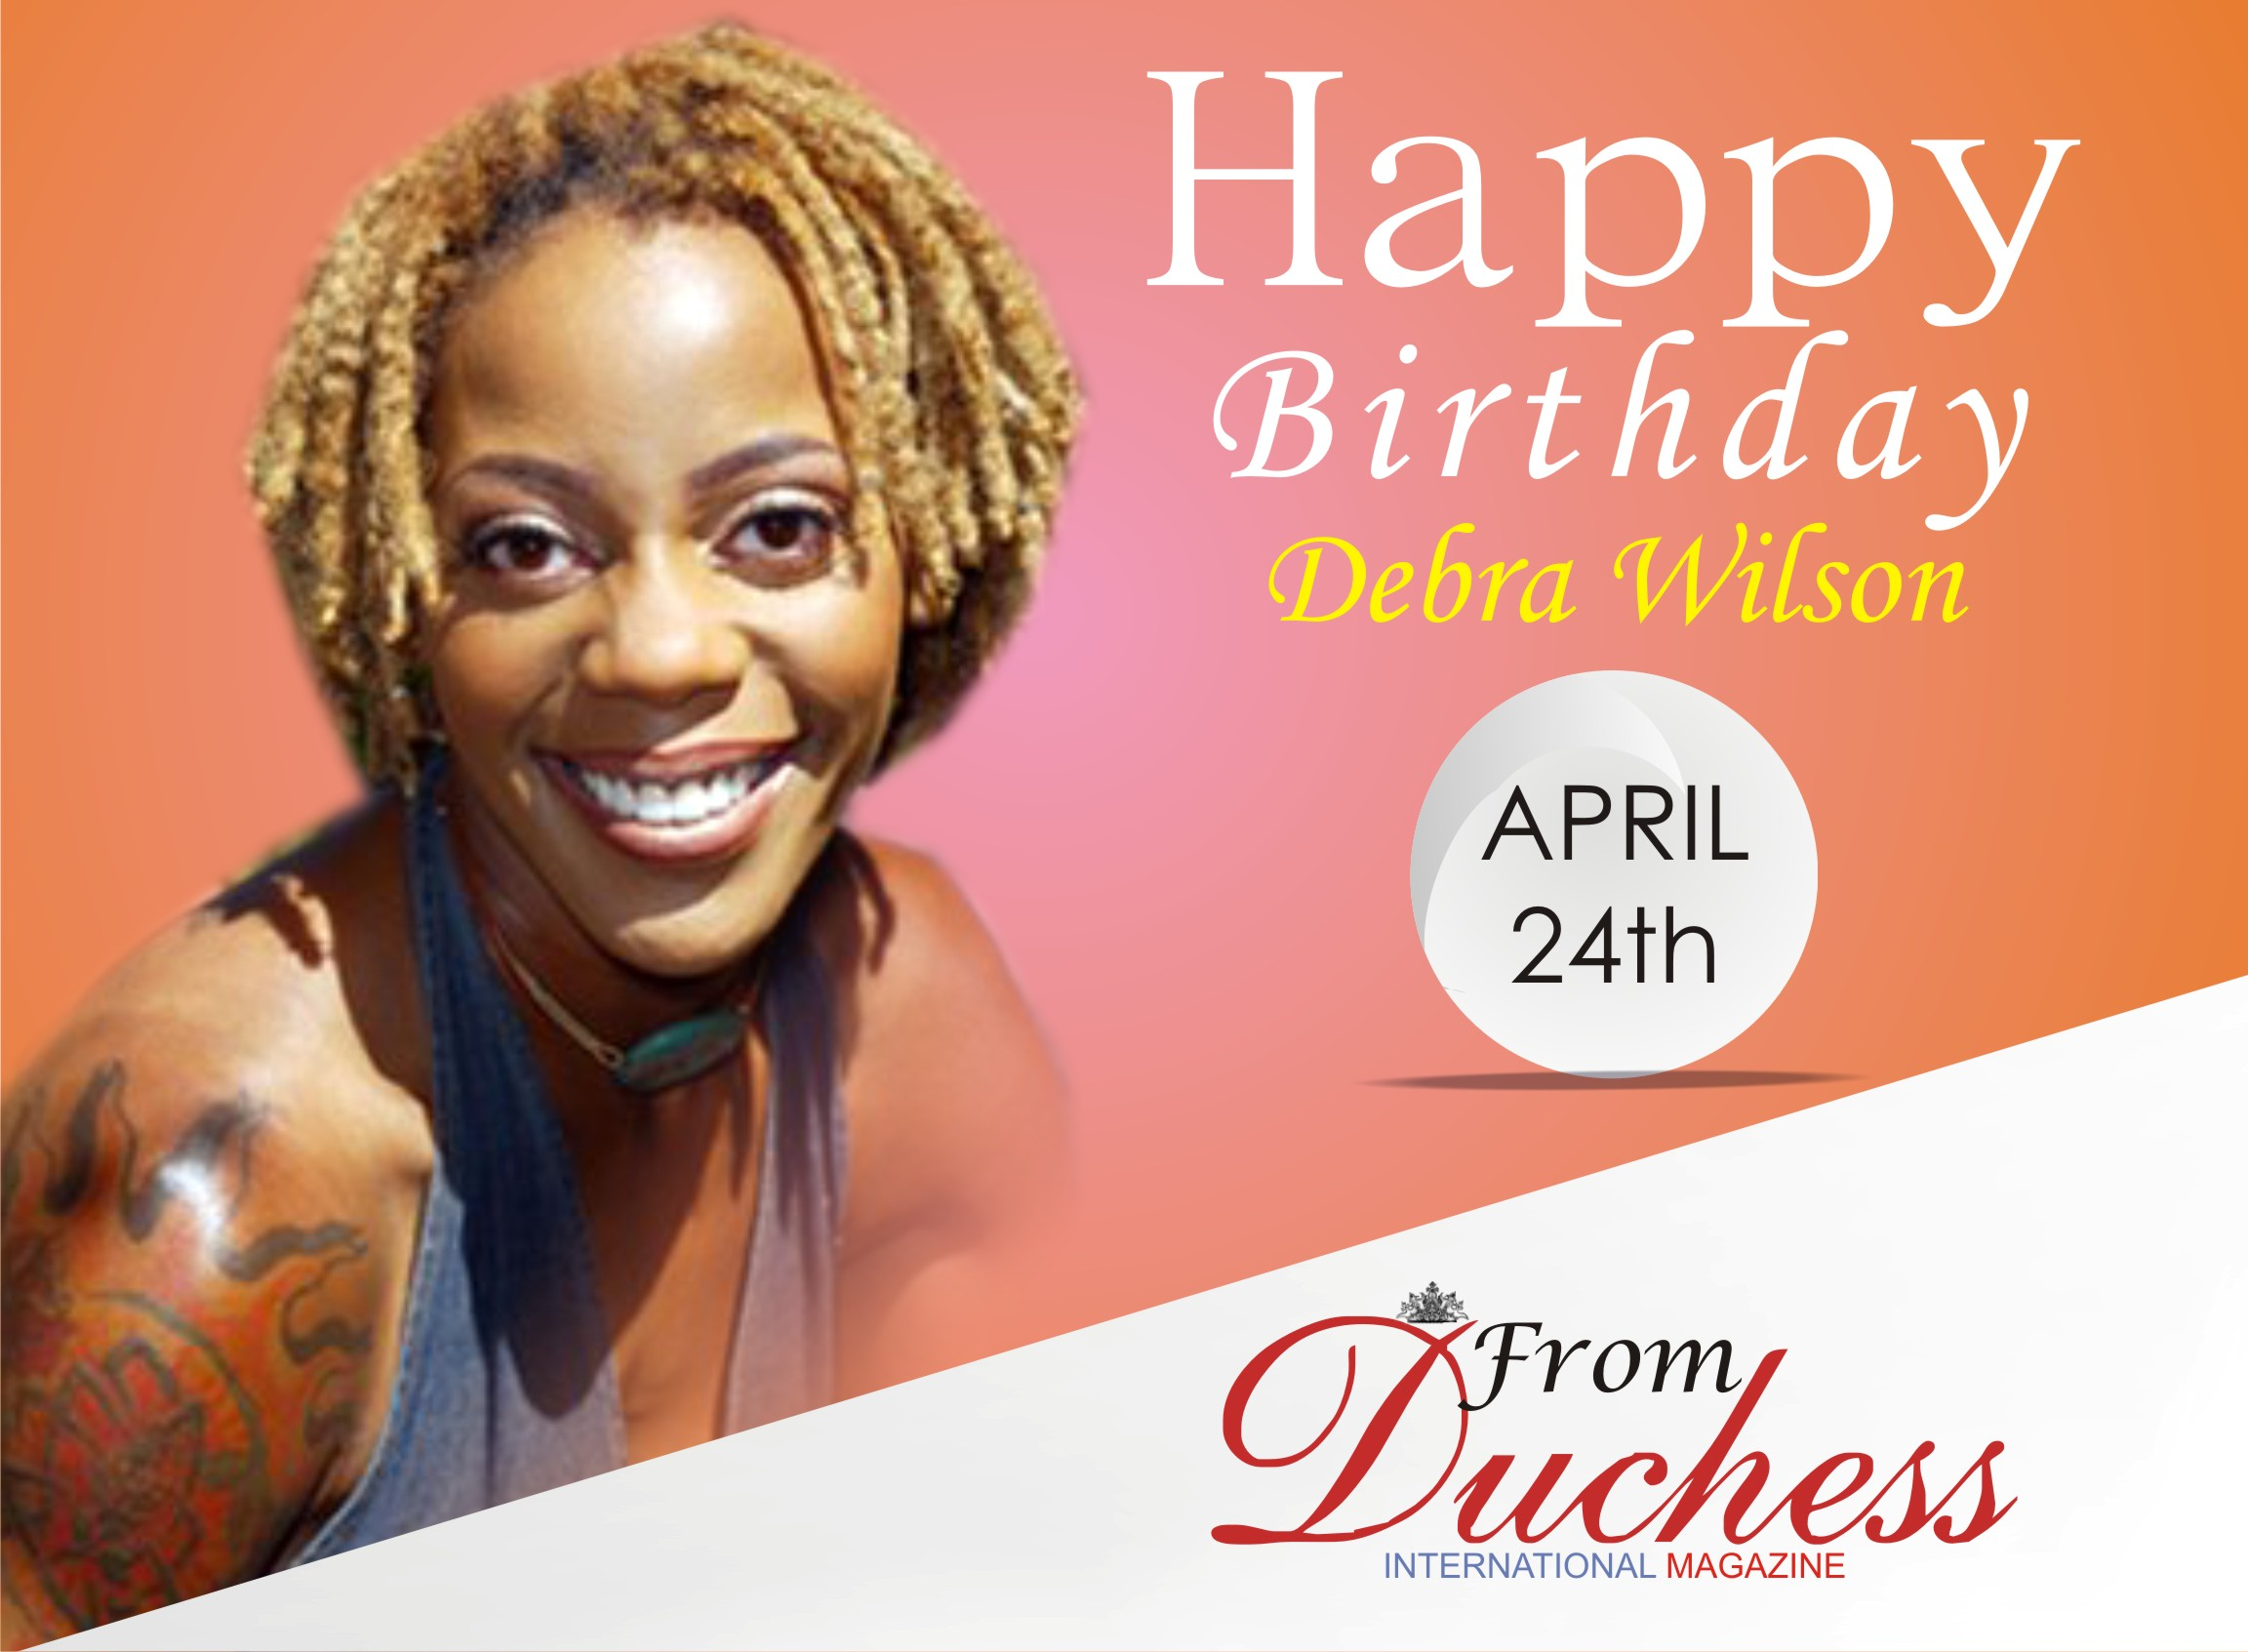 American Actress and Writer 'Debra Wilson' Turns 54 today